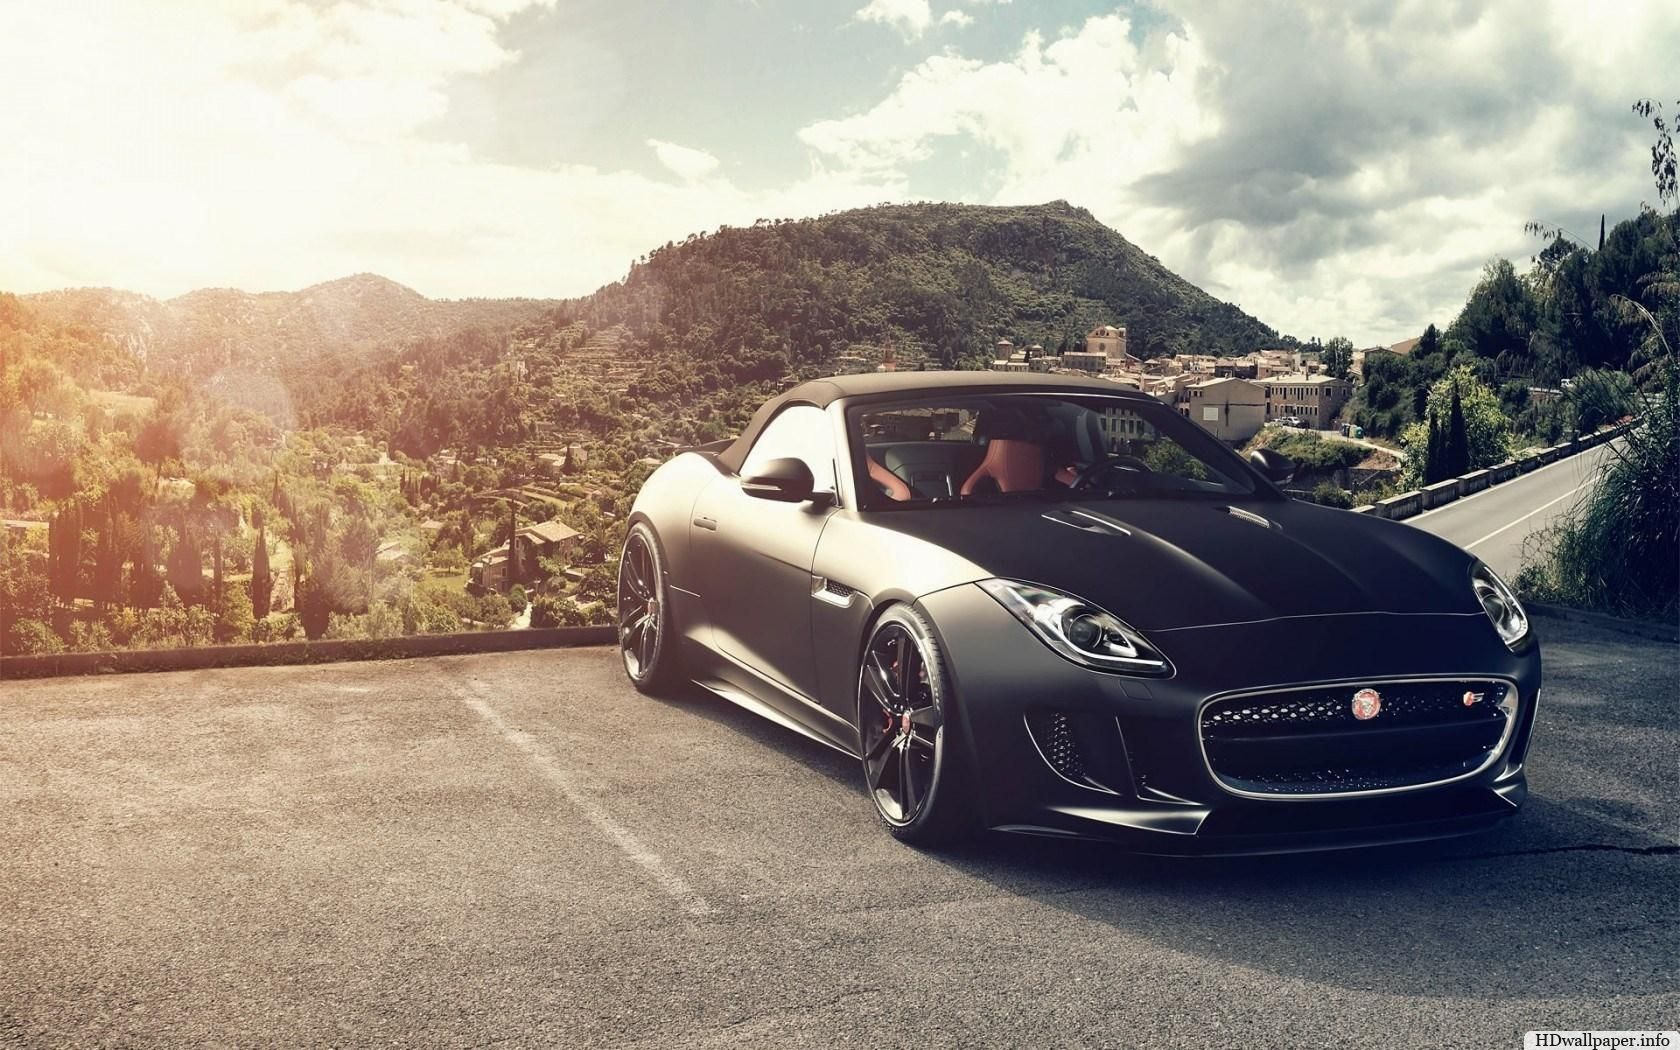 jaguar f type coupe iphone wallpaper | wallpapers for desktop